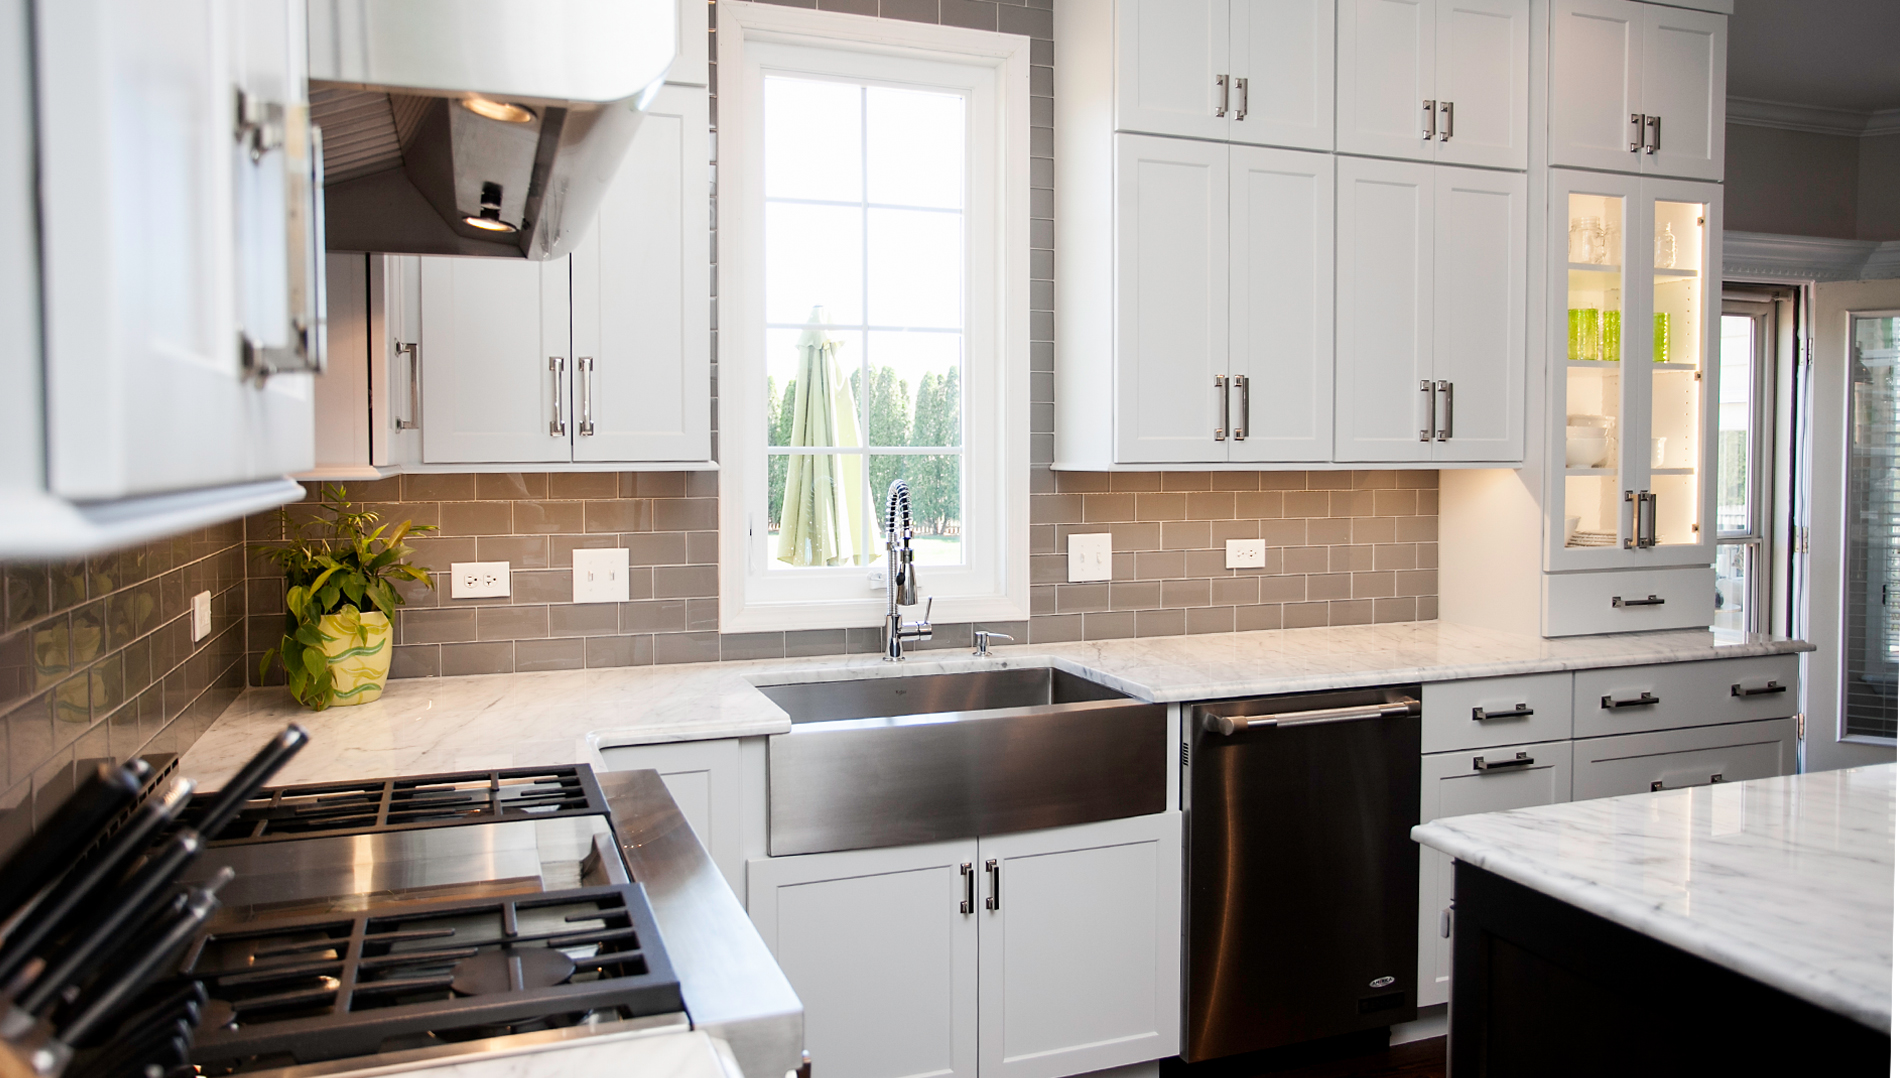 Stylish transitional kitchen design remodeling naperville for What are the kitchen designs